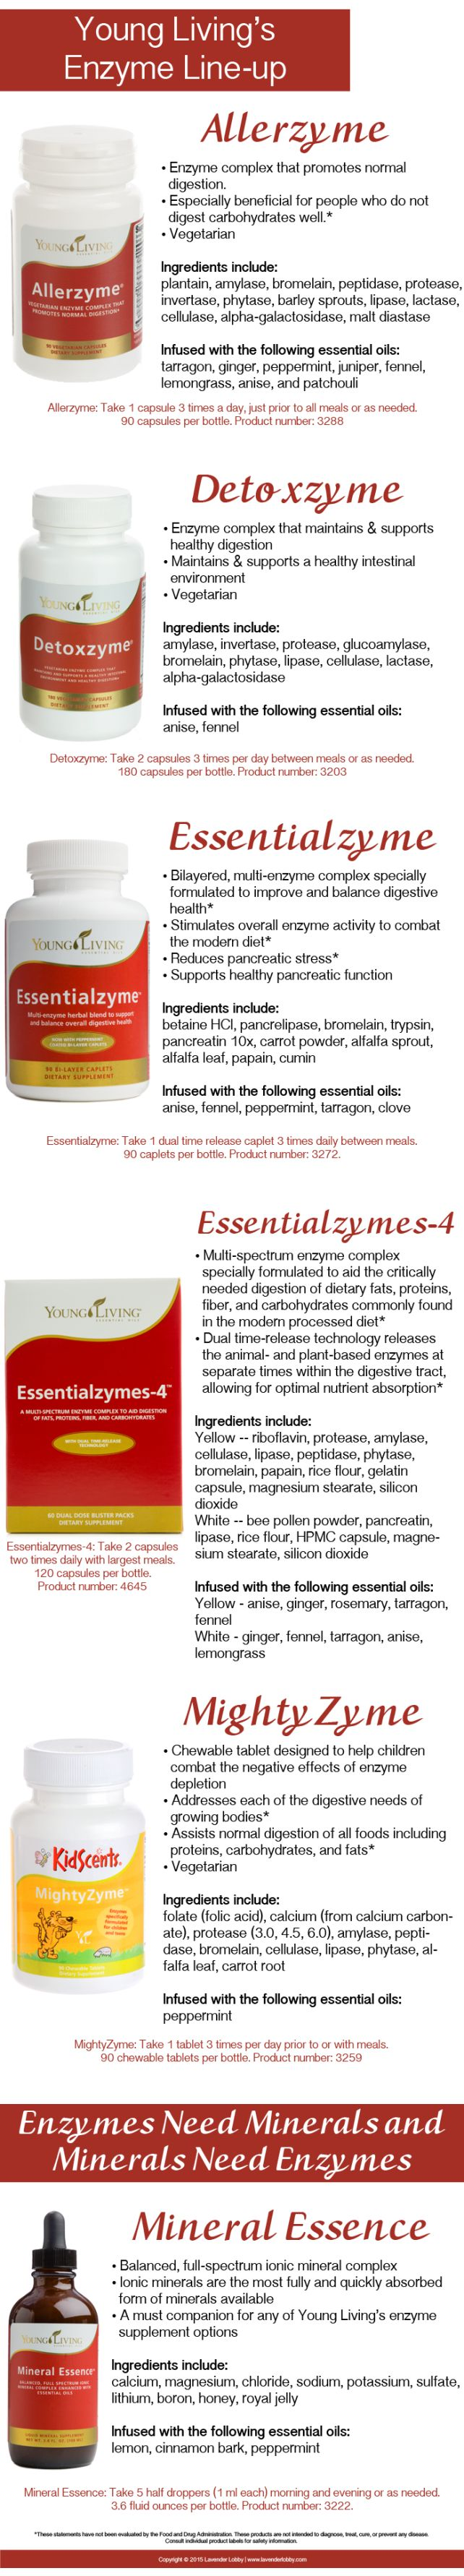 Unfortunately, today's modern diet often creates dietary imbalance with both minerals and enzymes. This is why supplements are important: they can help us maintain dietary balance so we can get the most nutrients from our foods. Young Living has several types of supplemental enzymes along with a mineral supplement. This  graphic helps focus on each of Young Living's enzyme supplements along with their mineral essence supplement. http://www.yldist.com/a2z4healt